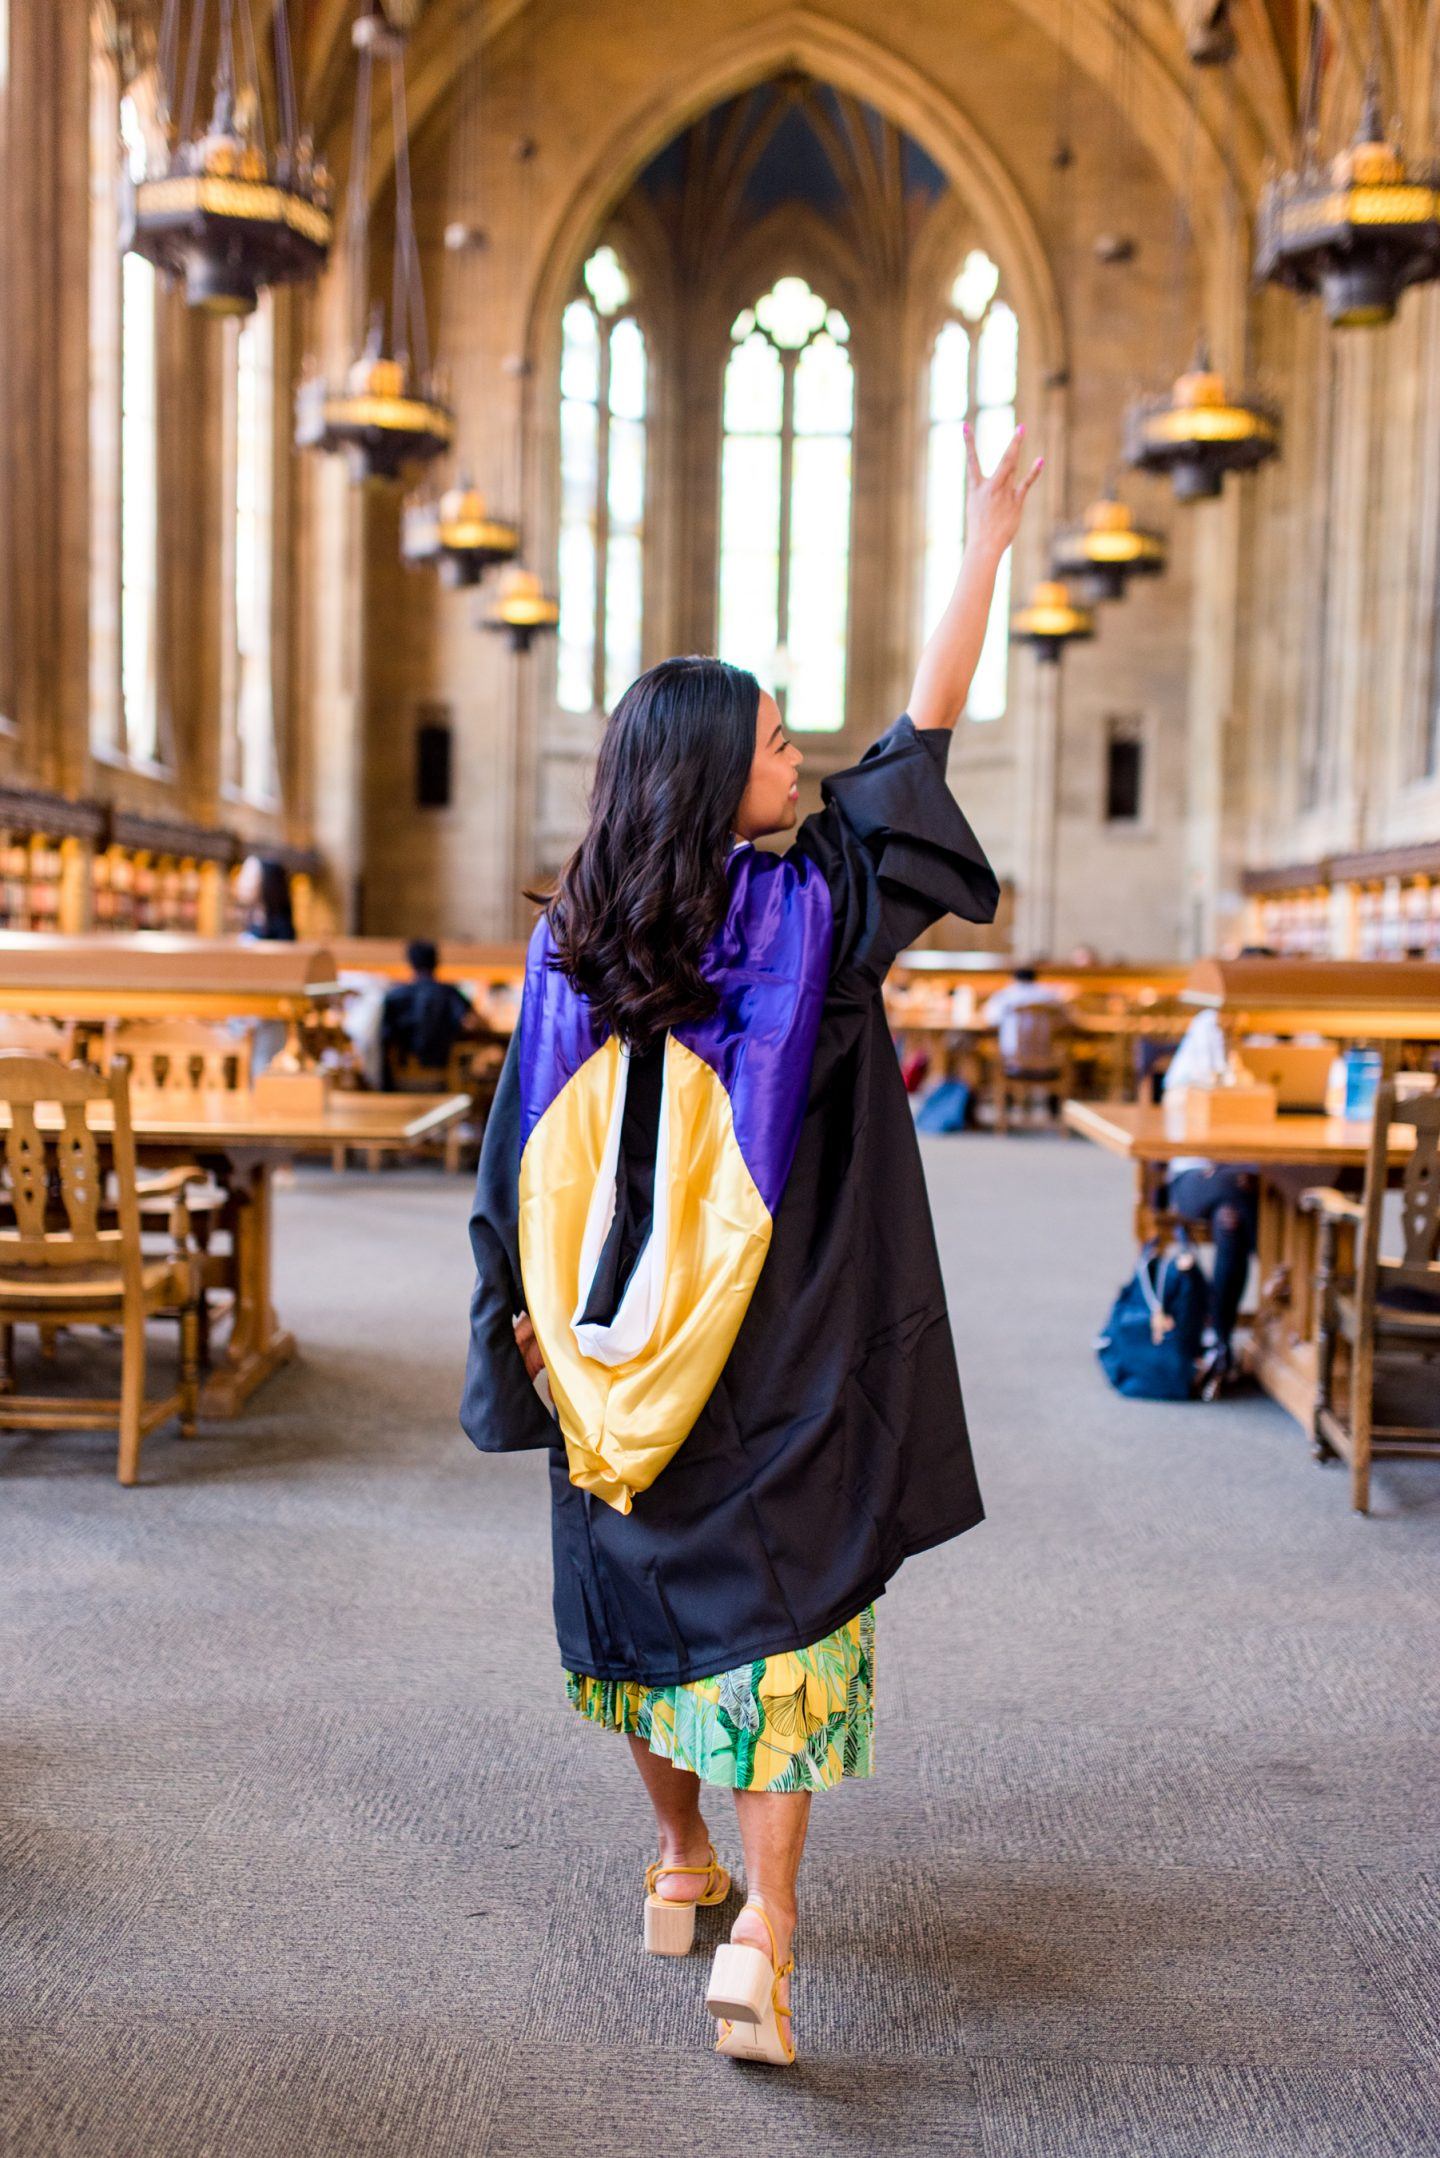 UW 2019 – UW Graduate – University of Washington – Class of 2019 – Masters of Communication in Digital Media